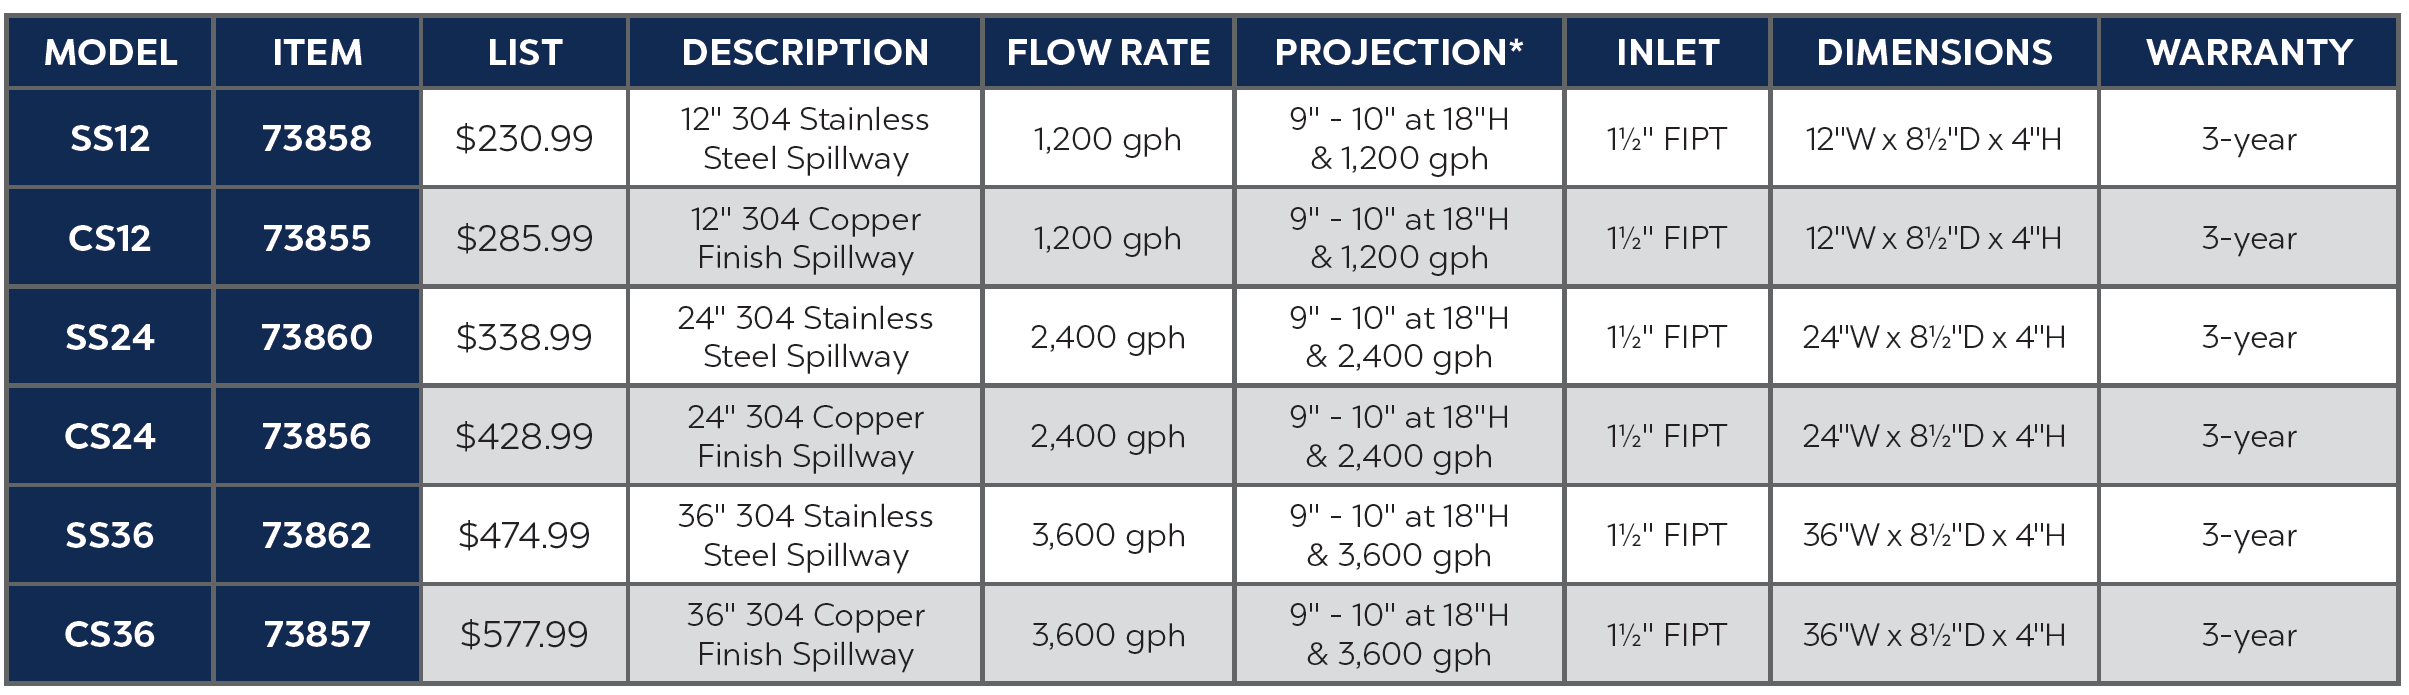 304 Stainless Steel Spillway Specs